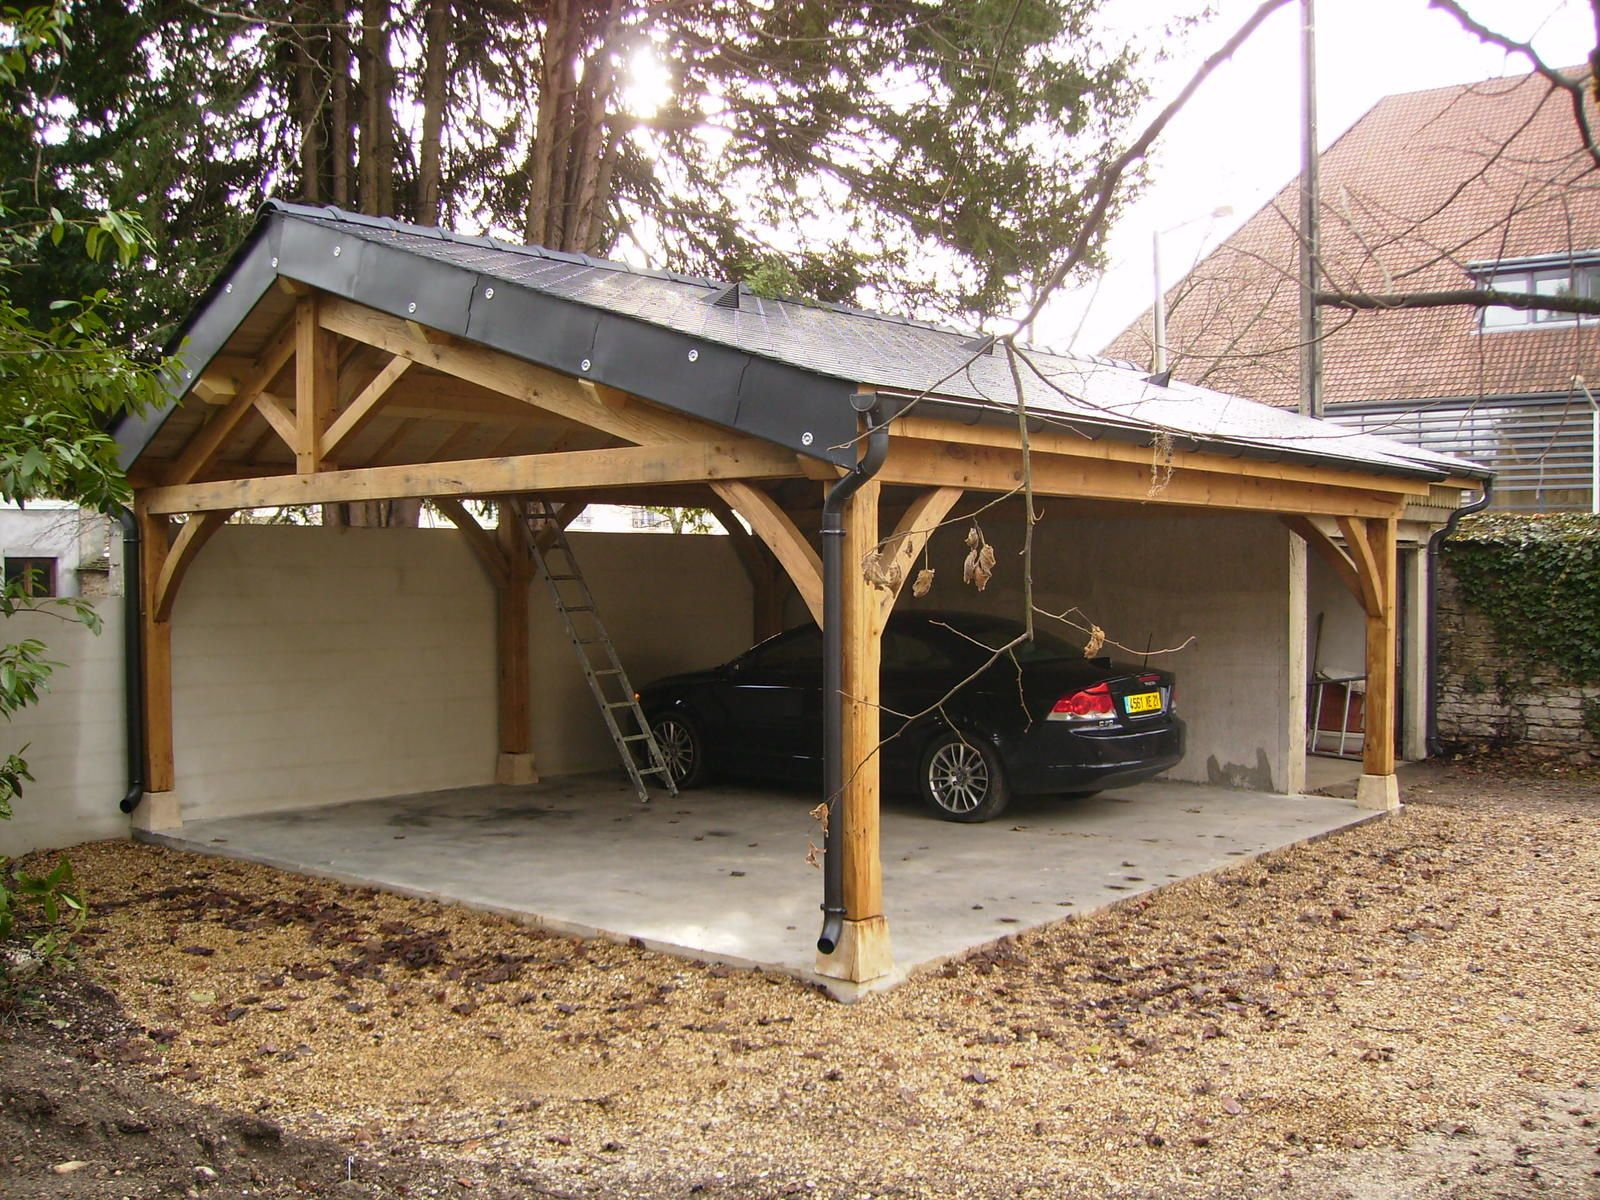 Garage en chene 2 voitures le blog du menuisier de la for Voiture pret garage